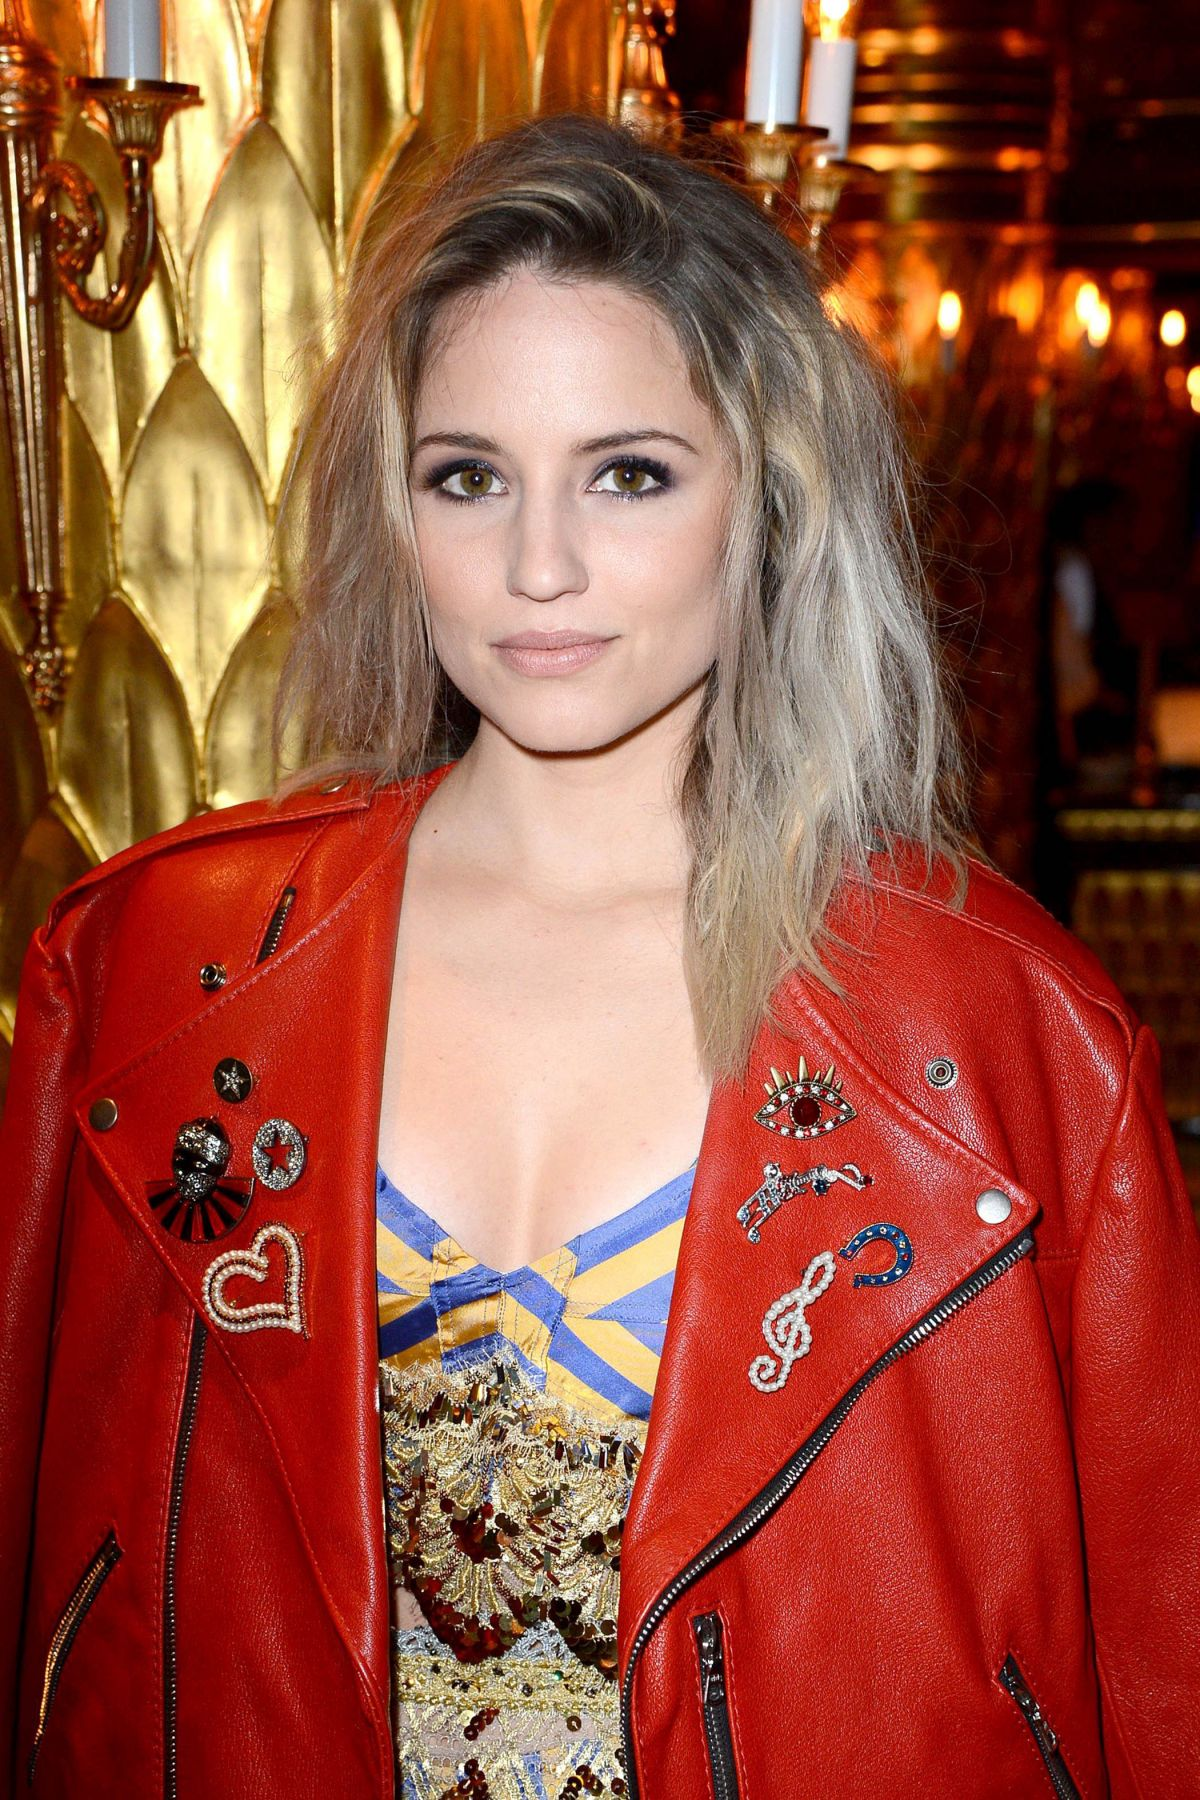 Dianna Agron At Marc Jacobs Beauty Dinner In New York 02